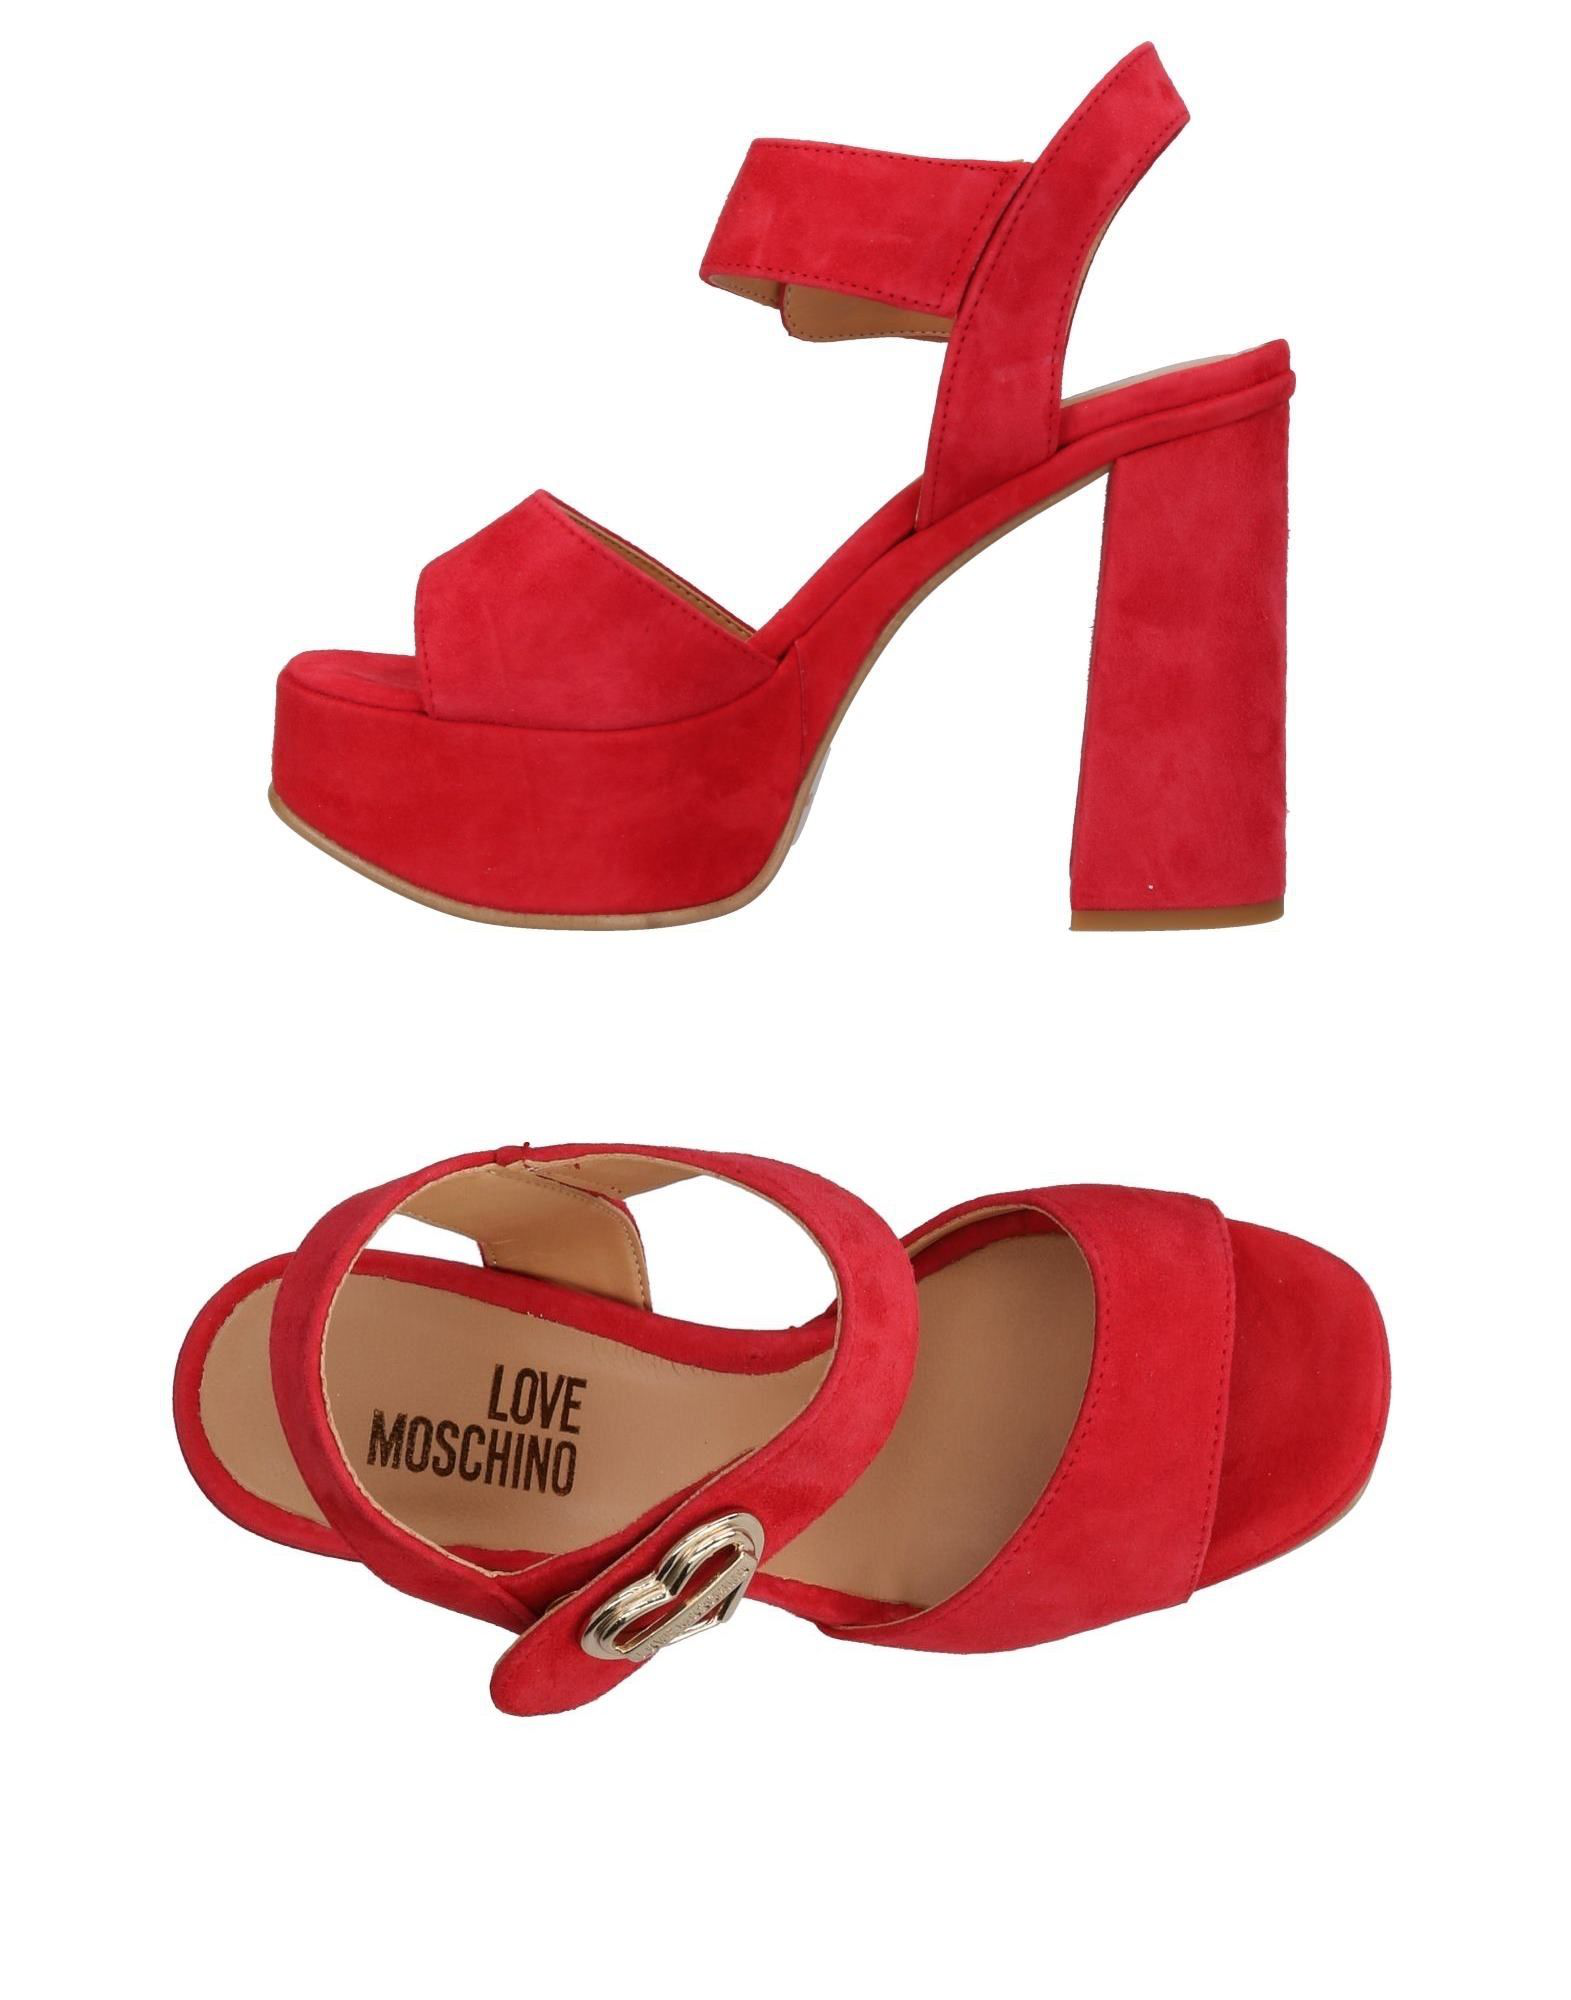 e83c04cadef7 Love Moschino Heart Buckle Heeled Platform Sandal - Red